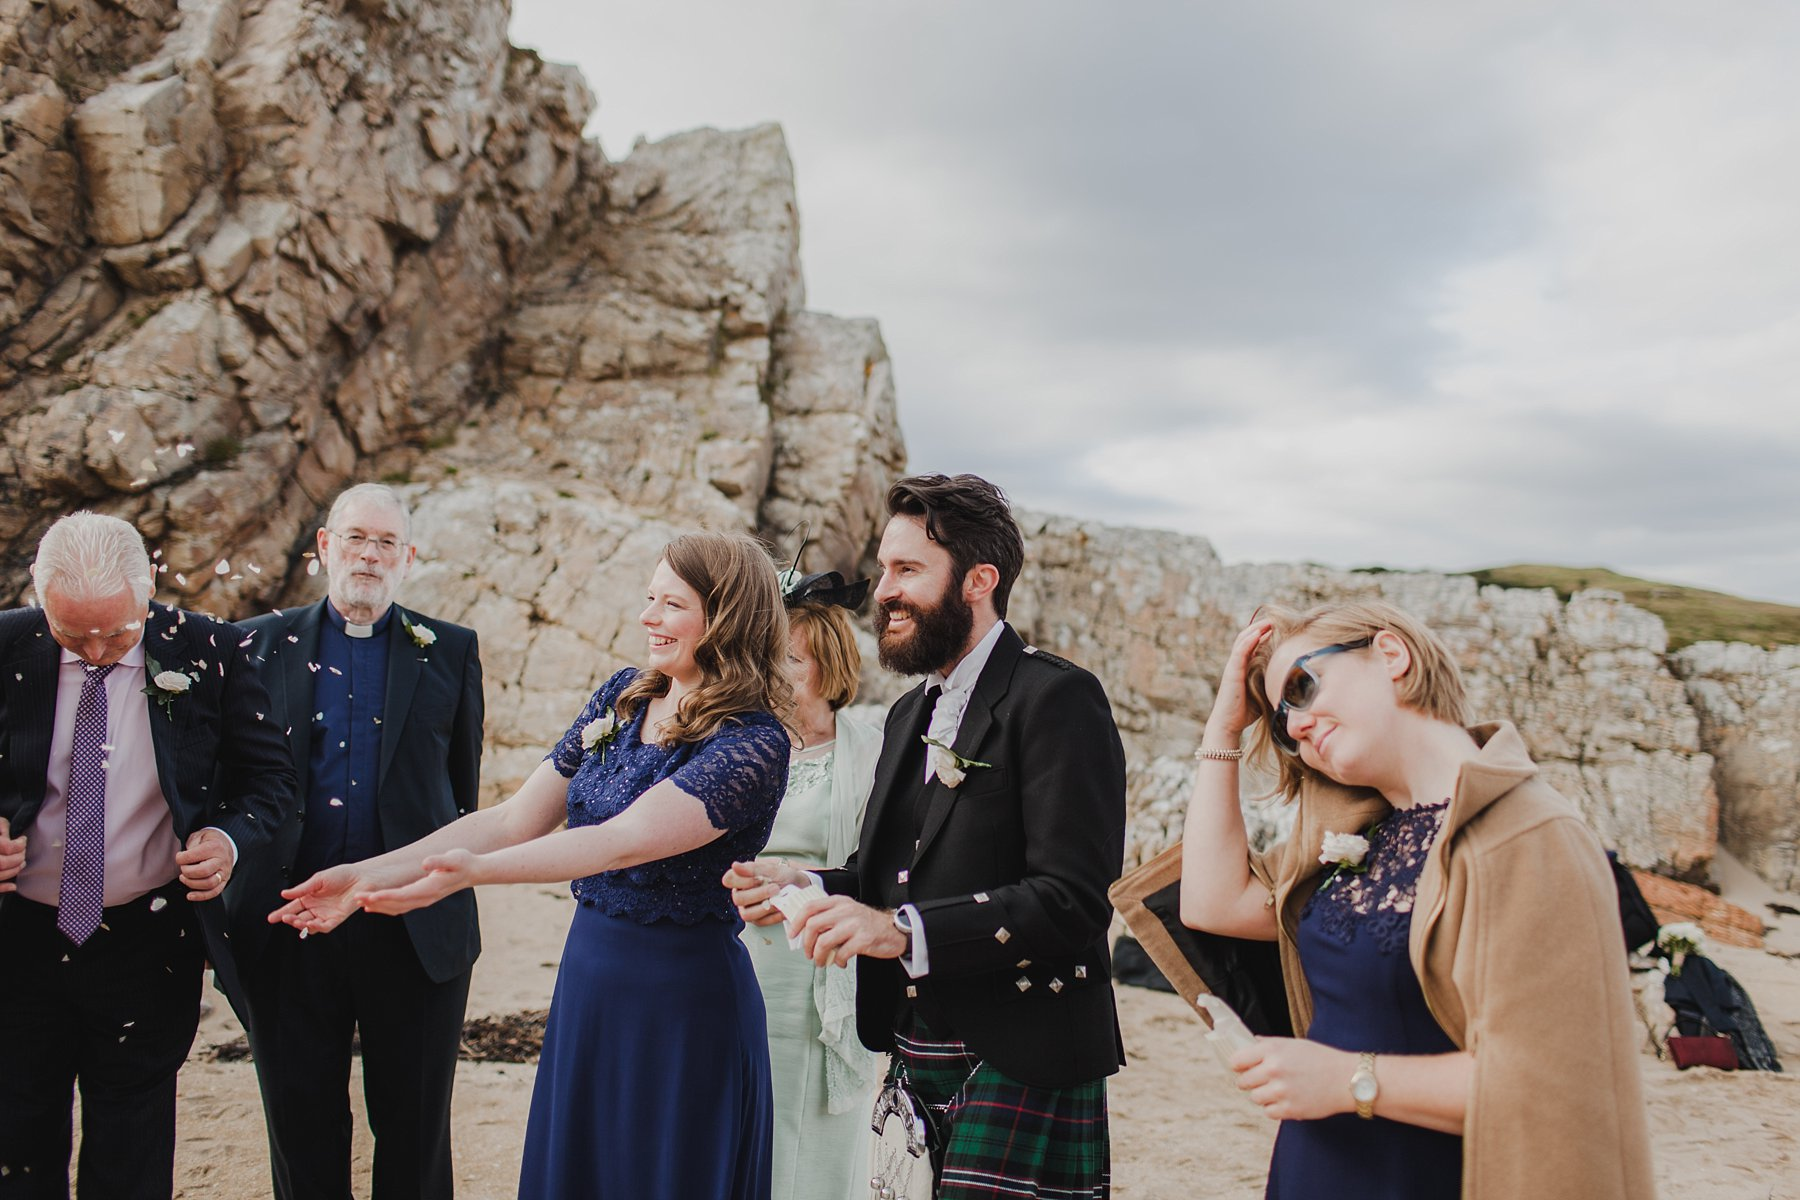 hornhead_donegak_elopement_weddings_0052